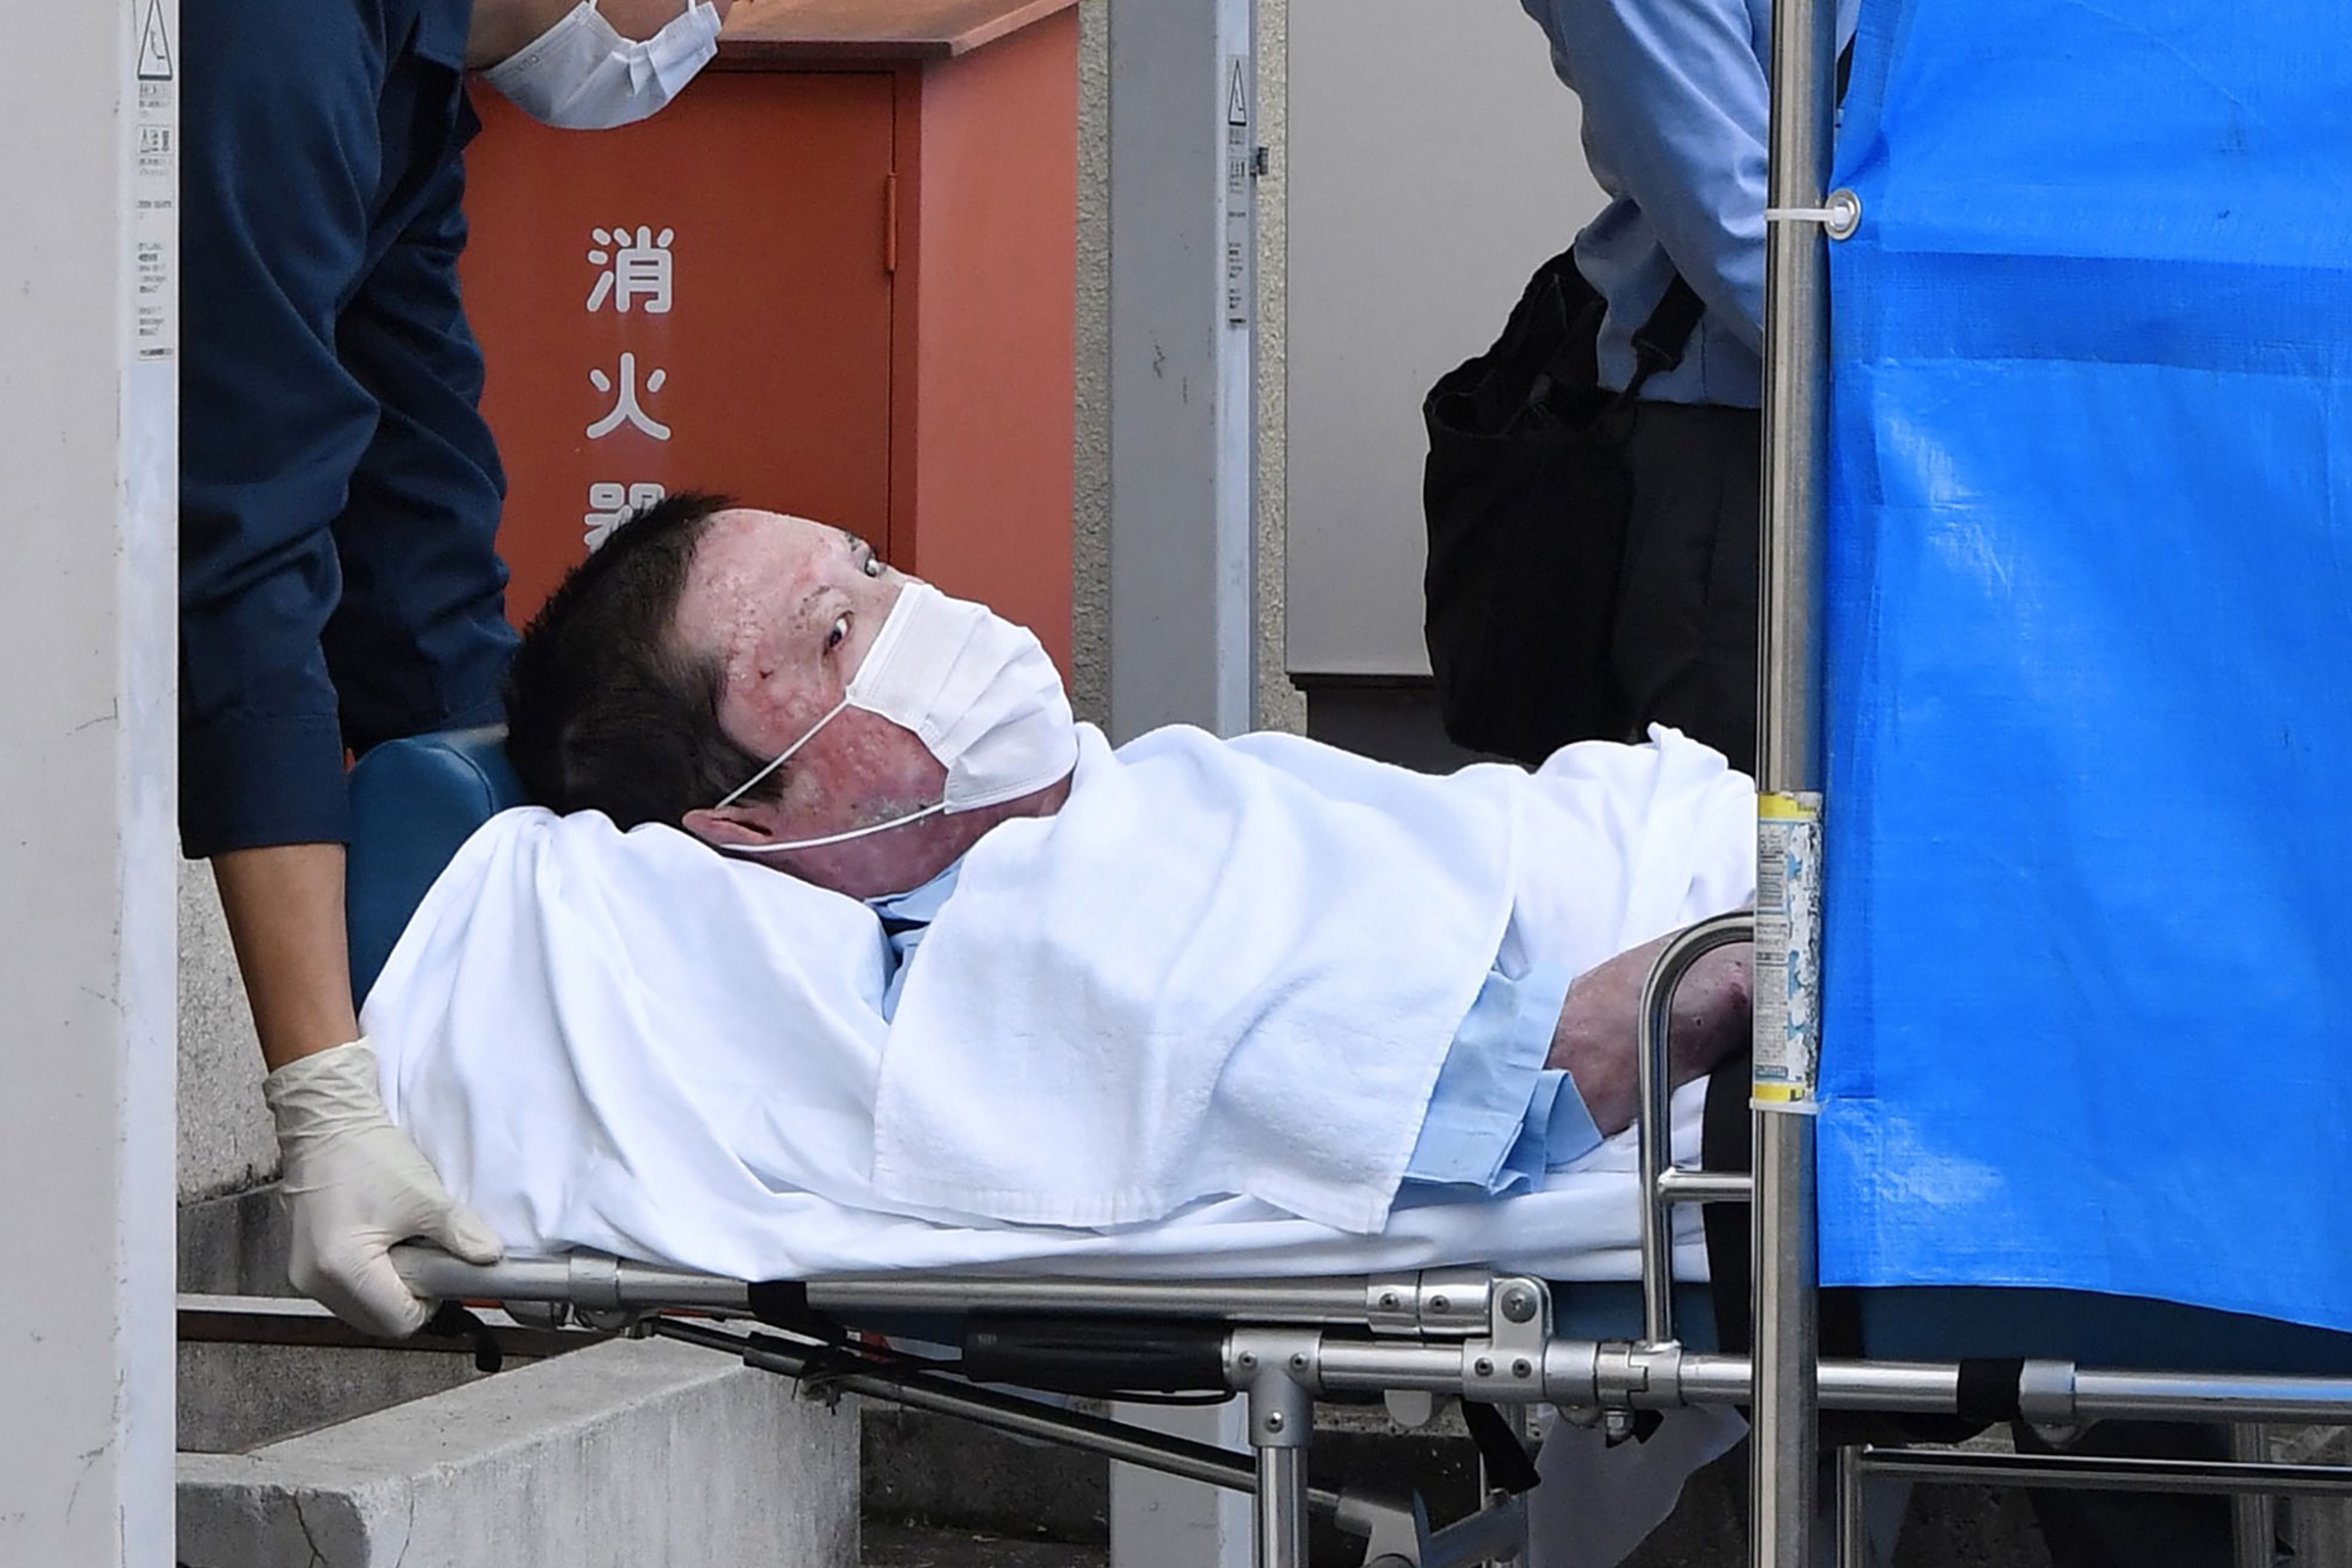 Shinji Aoba on a stretcher is carried to Fushimi police station after being arrested in Kyoto, western Japan, Wednesday, May 27, 2020. Japanese police arrested the suspect in a deadly arson at Kyoto Animation's No. 1 studio on July 18, 2019 after the alleged attacker regained enough strength from his own injury to respond to police investigation. Aoba is accused of storming into the studio, setting it on fire and killing 36 people. Wednesday's arrest comes 10 months after the police obtained permission from a local court as they had to wait for Aoba, who had suffered severe burns and was in a critical condition. (Ryosuke Ozawa/Kyodo News via AP)